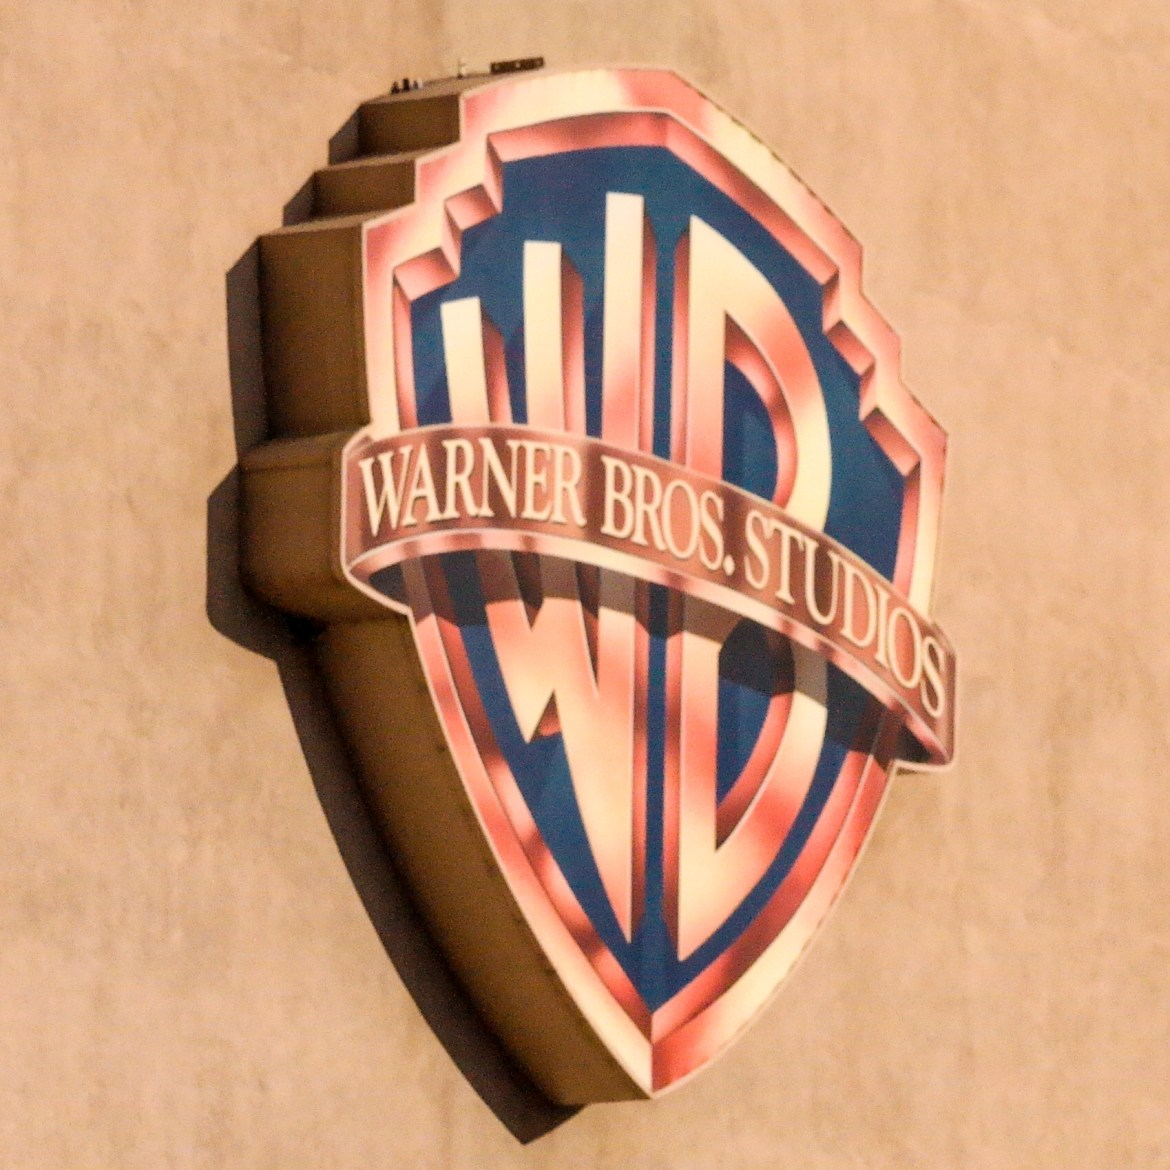 #warnerbrostour